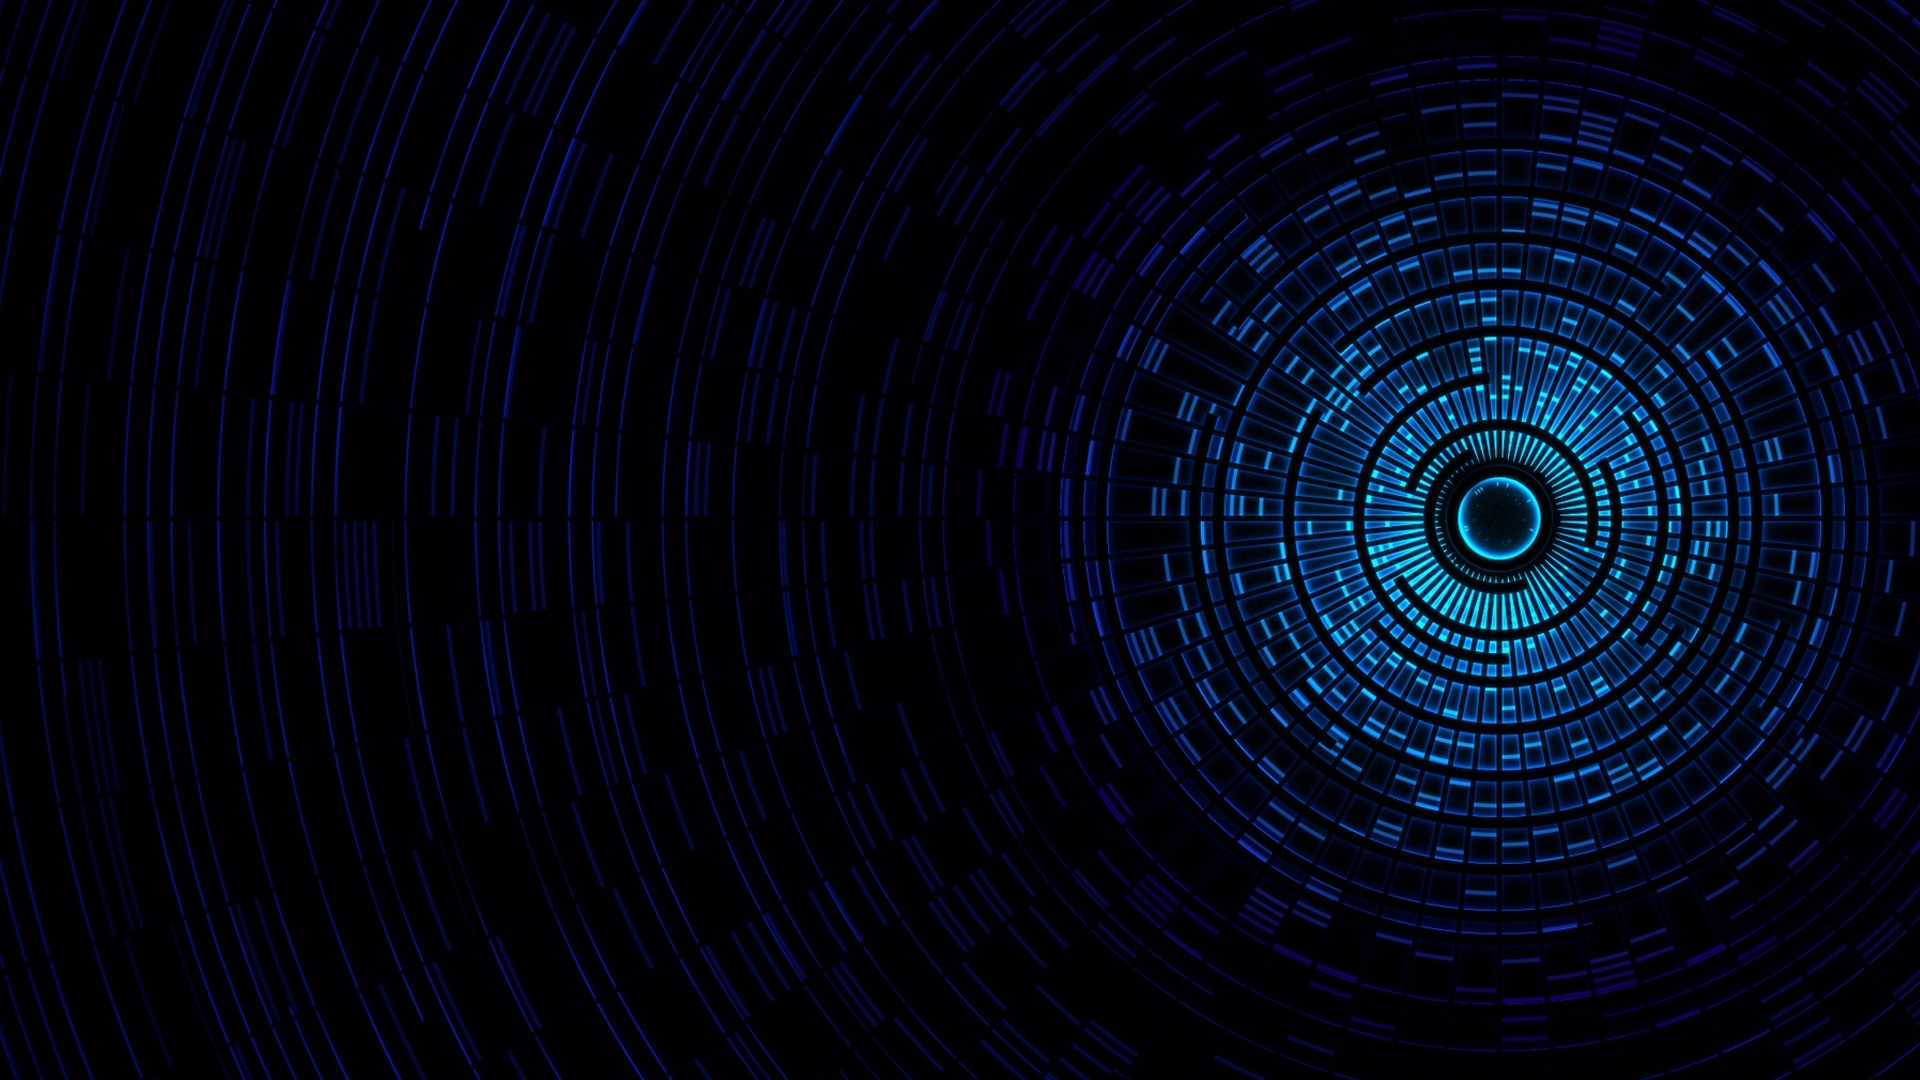 Black & Blue Abstract Passage Light Wallpaper